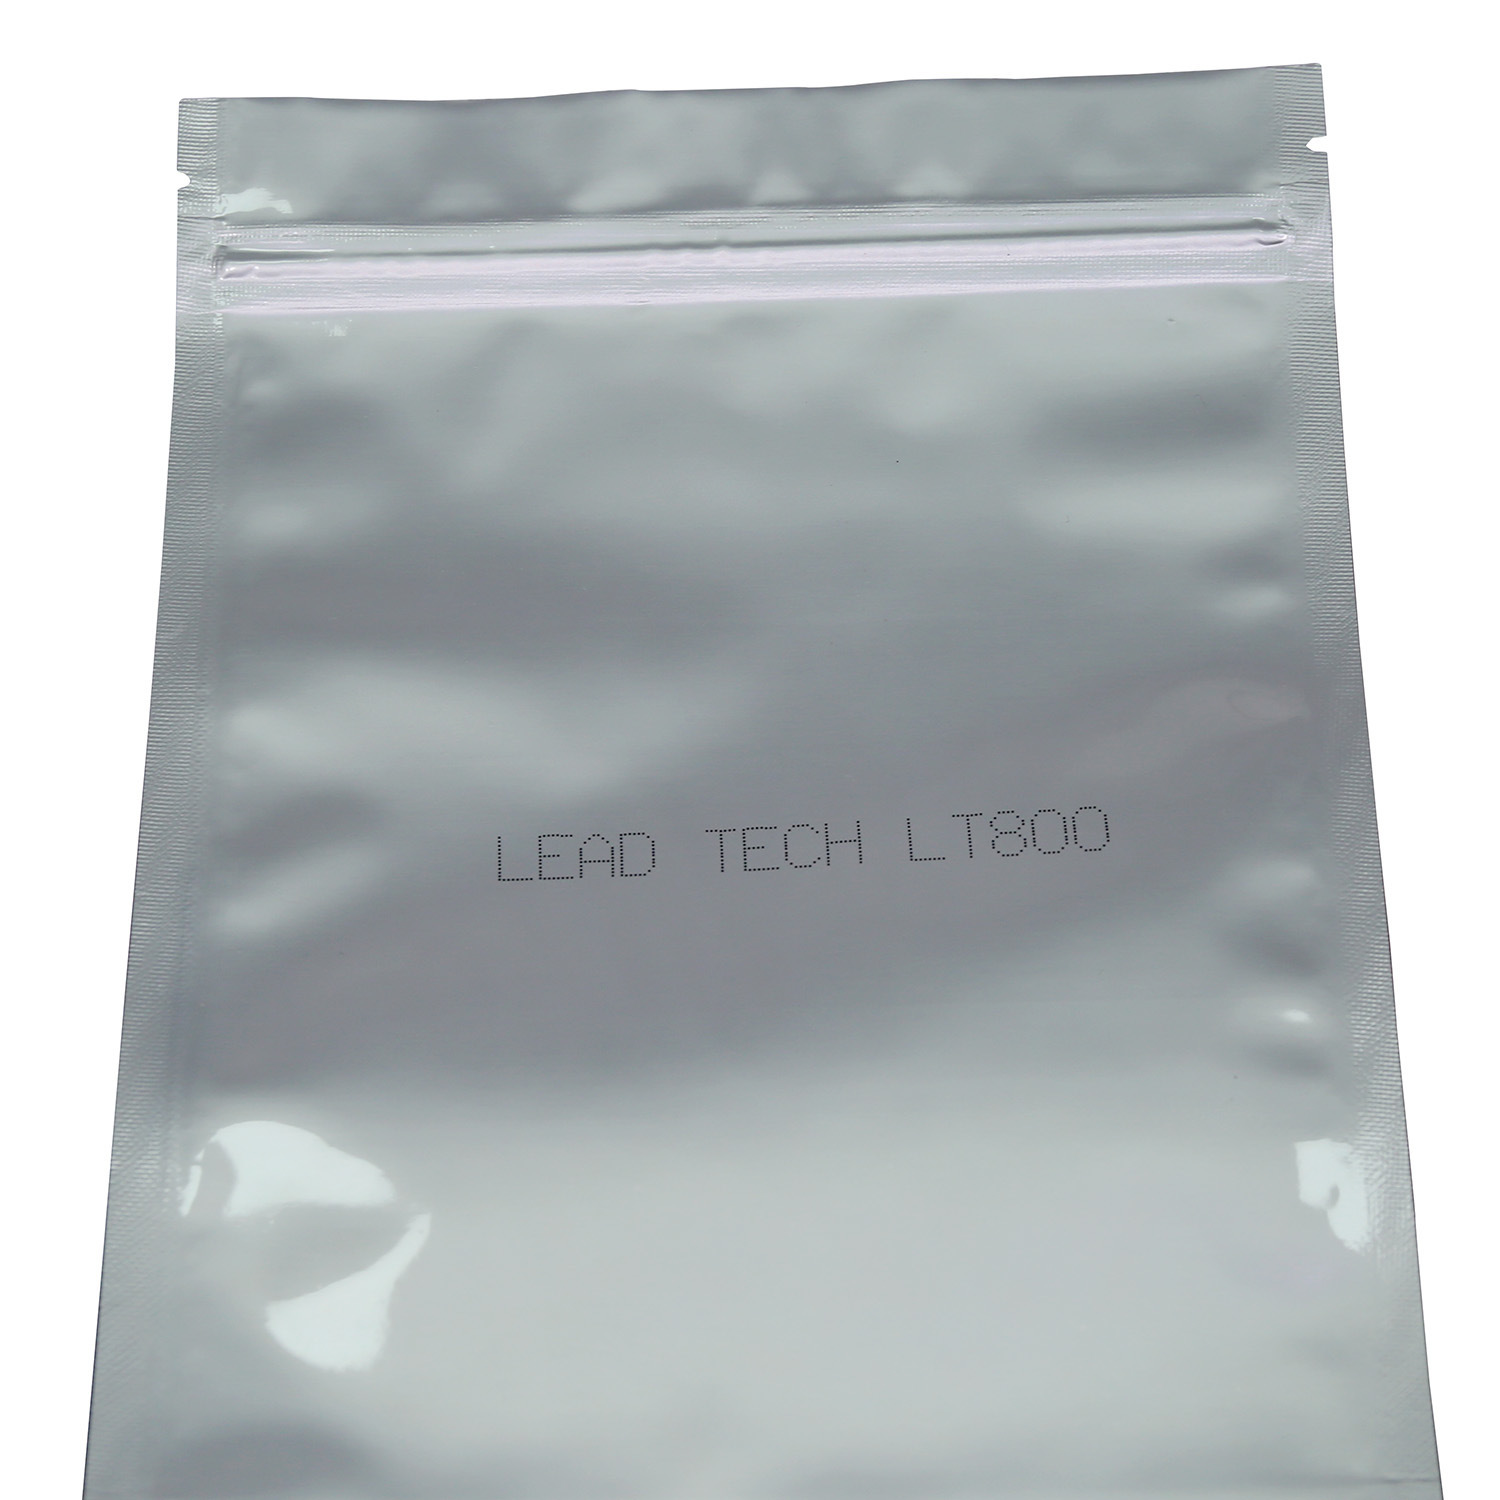 Lead Tech Lt800 Continuous Inkjet Print for Textile Printing